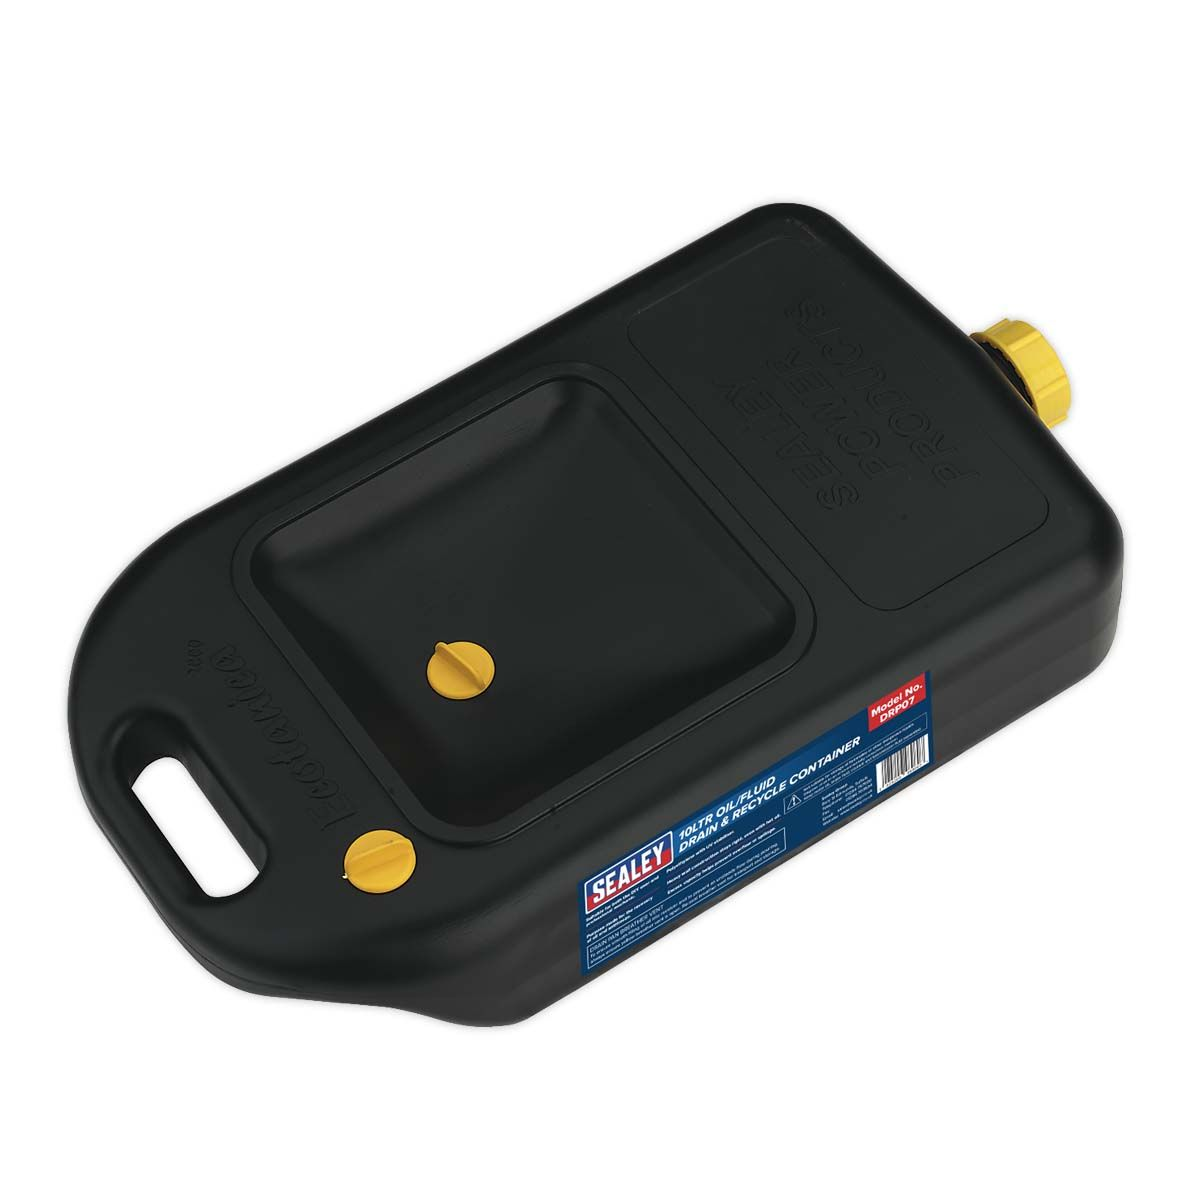 Sealey Oil/Fluid Drain & Recycle Container 10L